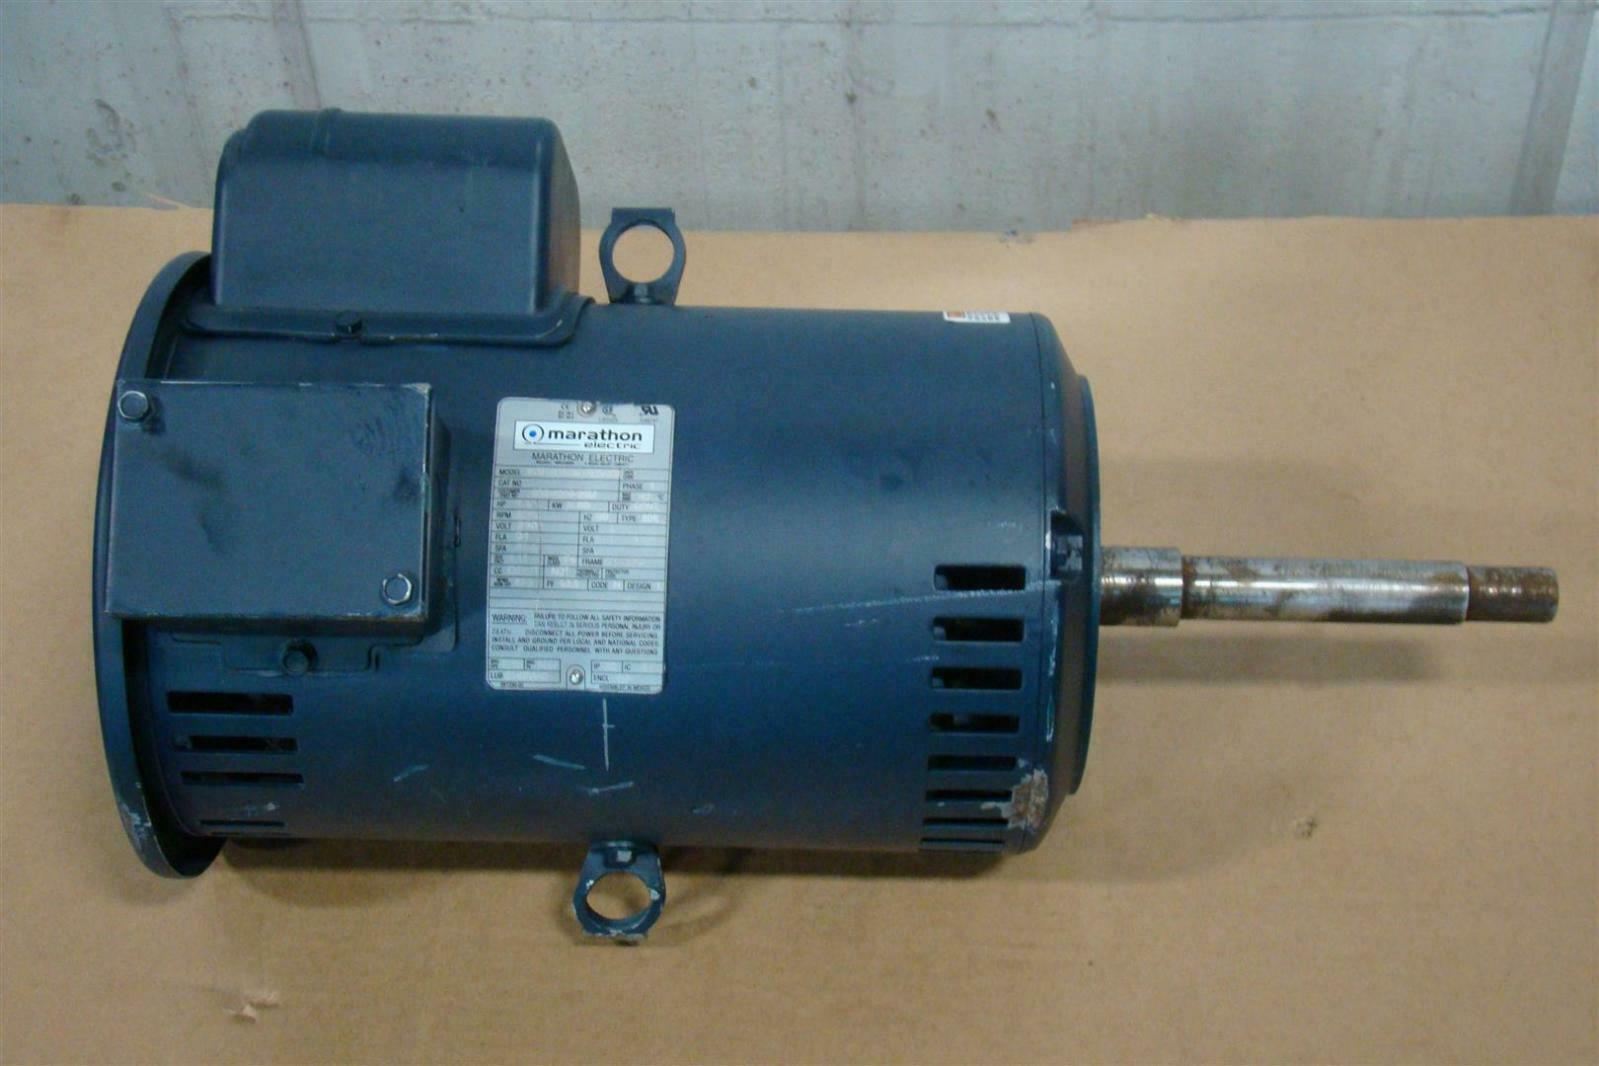 Marathon electric 7 5 hp motor 230v 3515 rpm single phase for Marathon electric motors model numbers